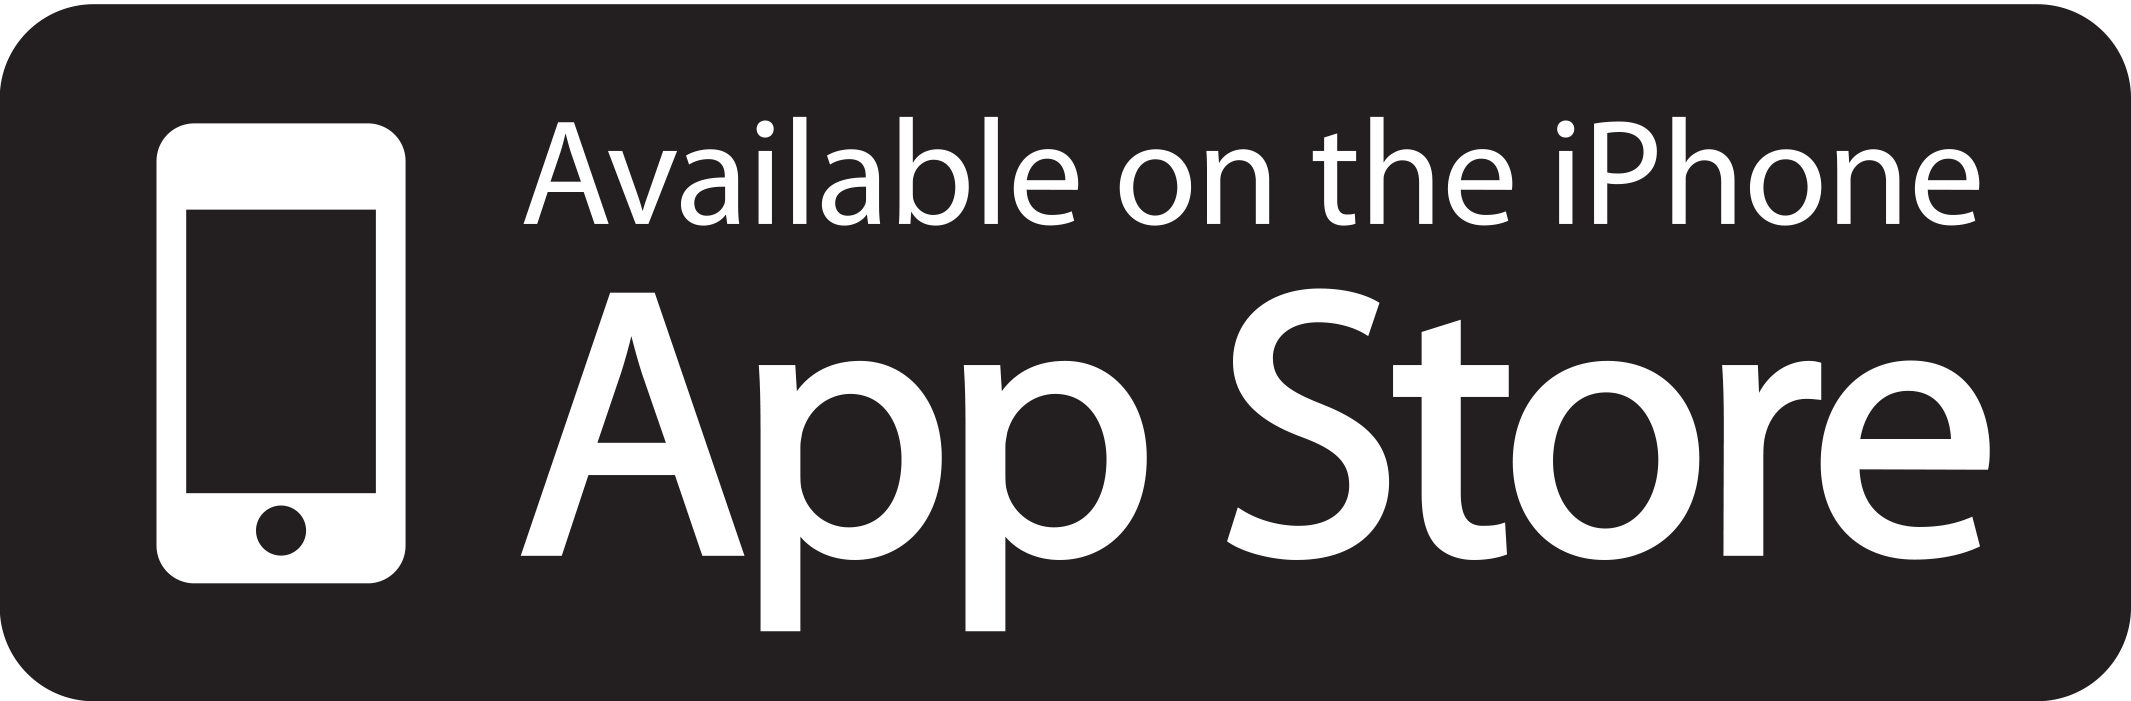 2131x701 Available On The App Store Logo Vector